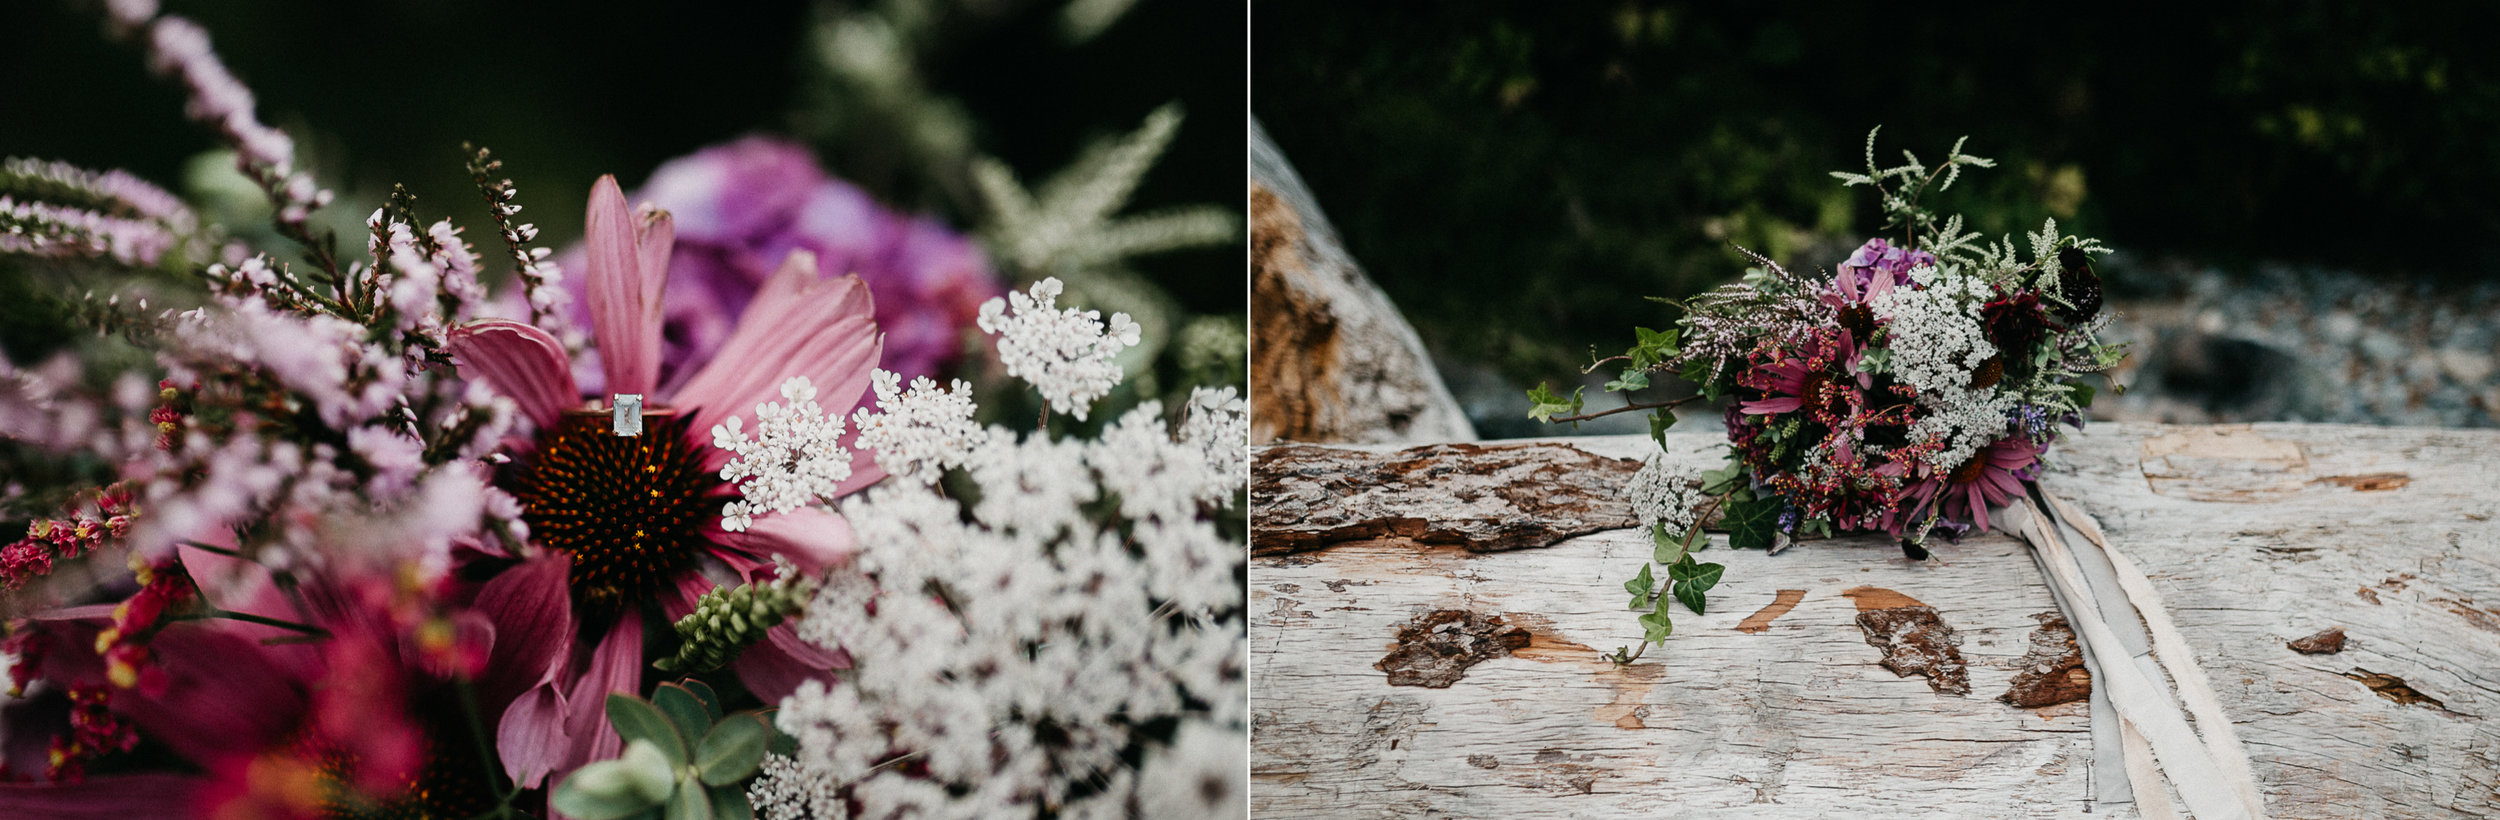 The bouquet of flowers and wedding ring Sombrio Beach Vancouver Island wedding